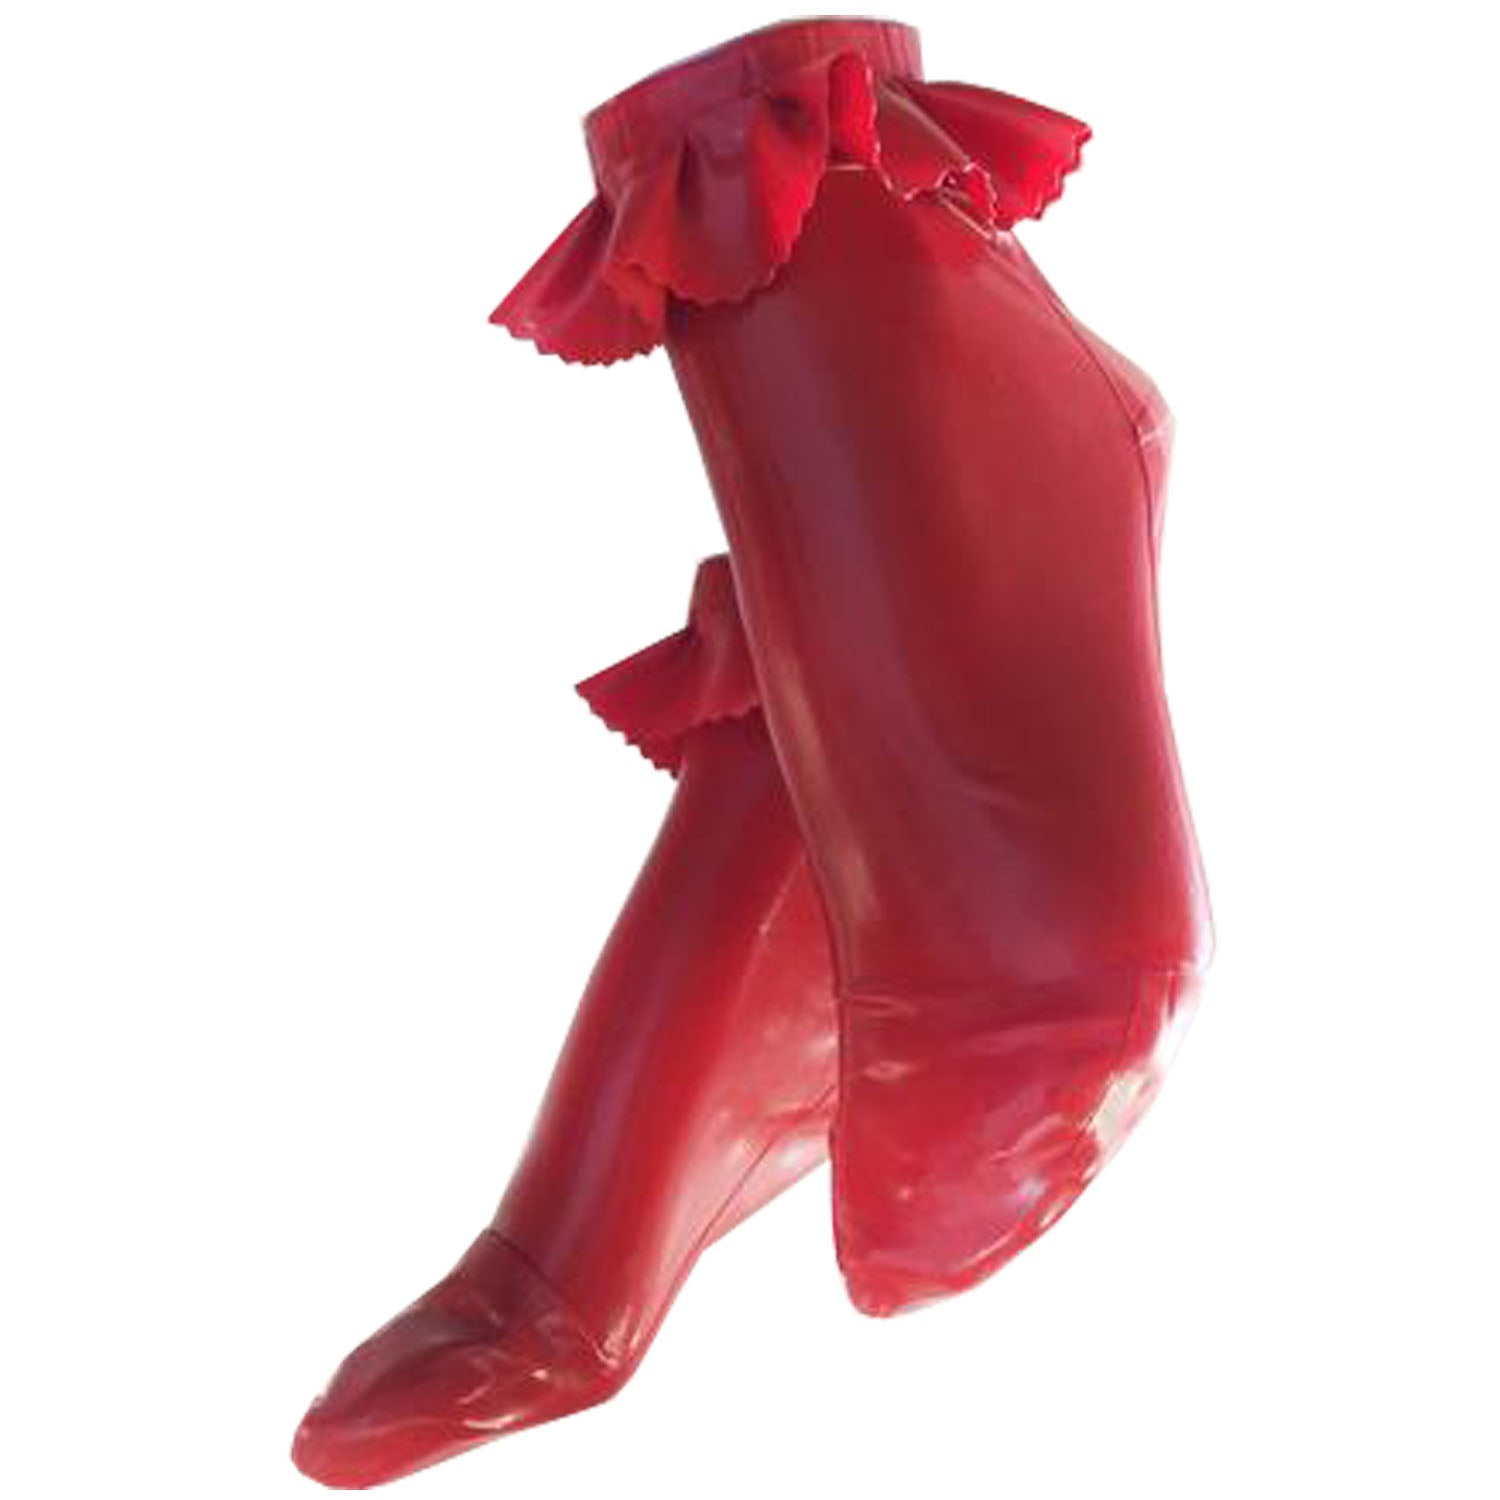 Ruffle Socks  Womens - Vex Inc. | Latex Clothing